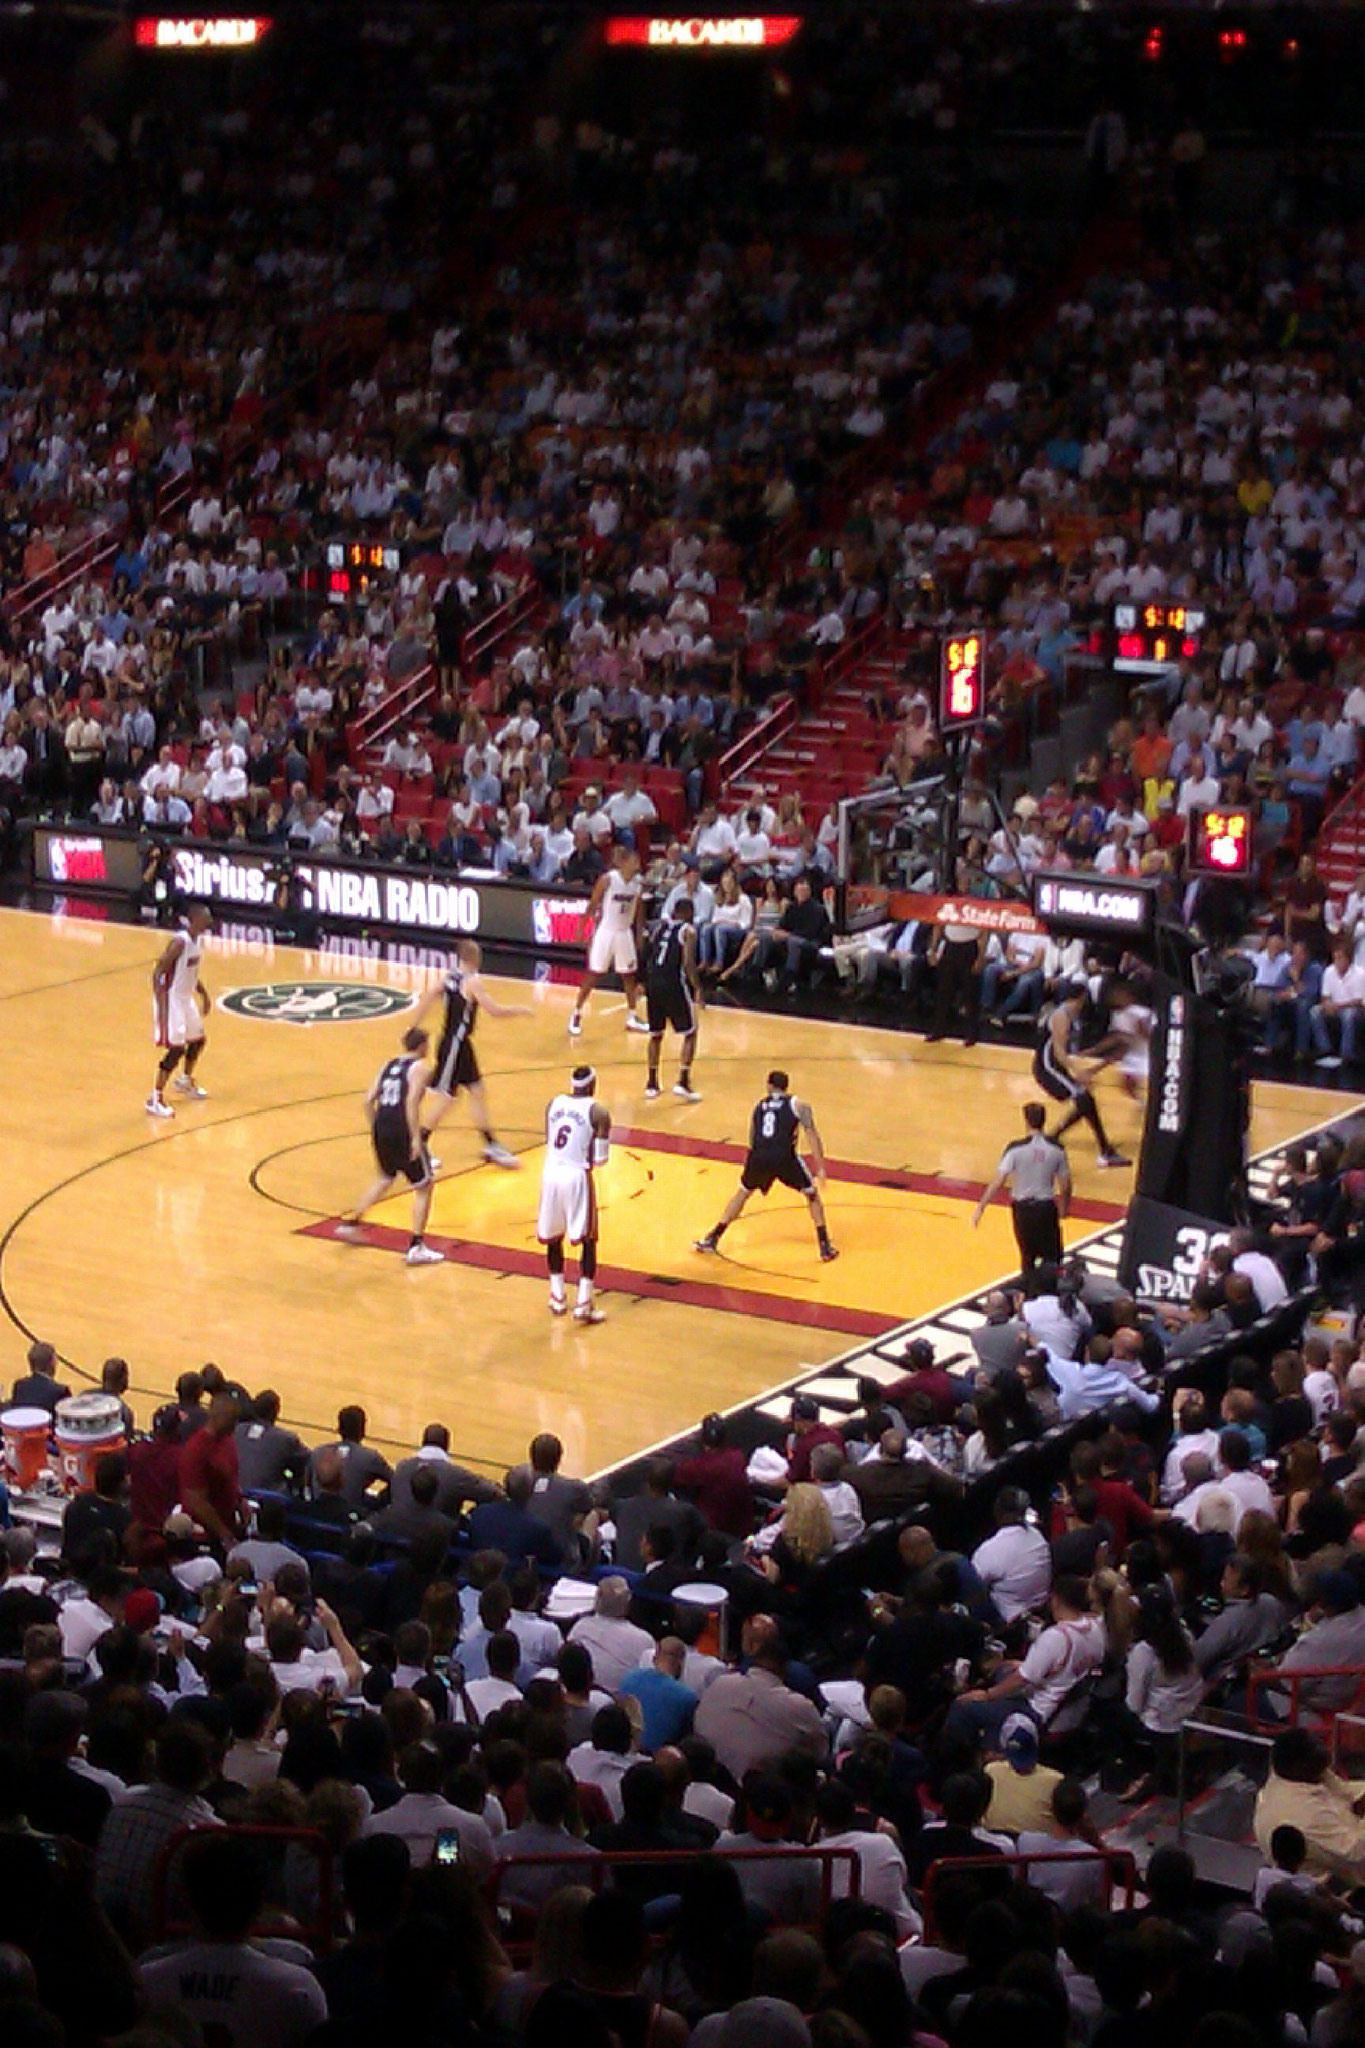 Miami Heat vs Brooklyn Nets (2013/14)